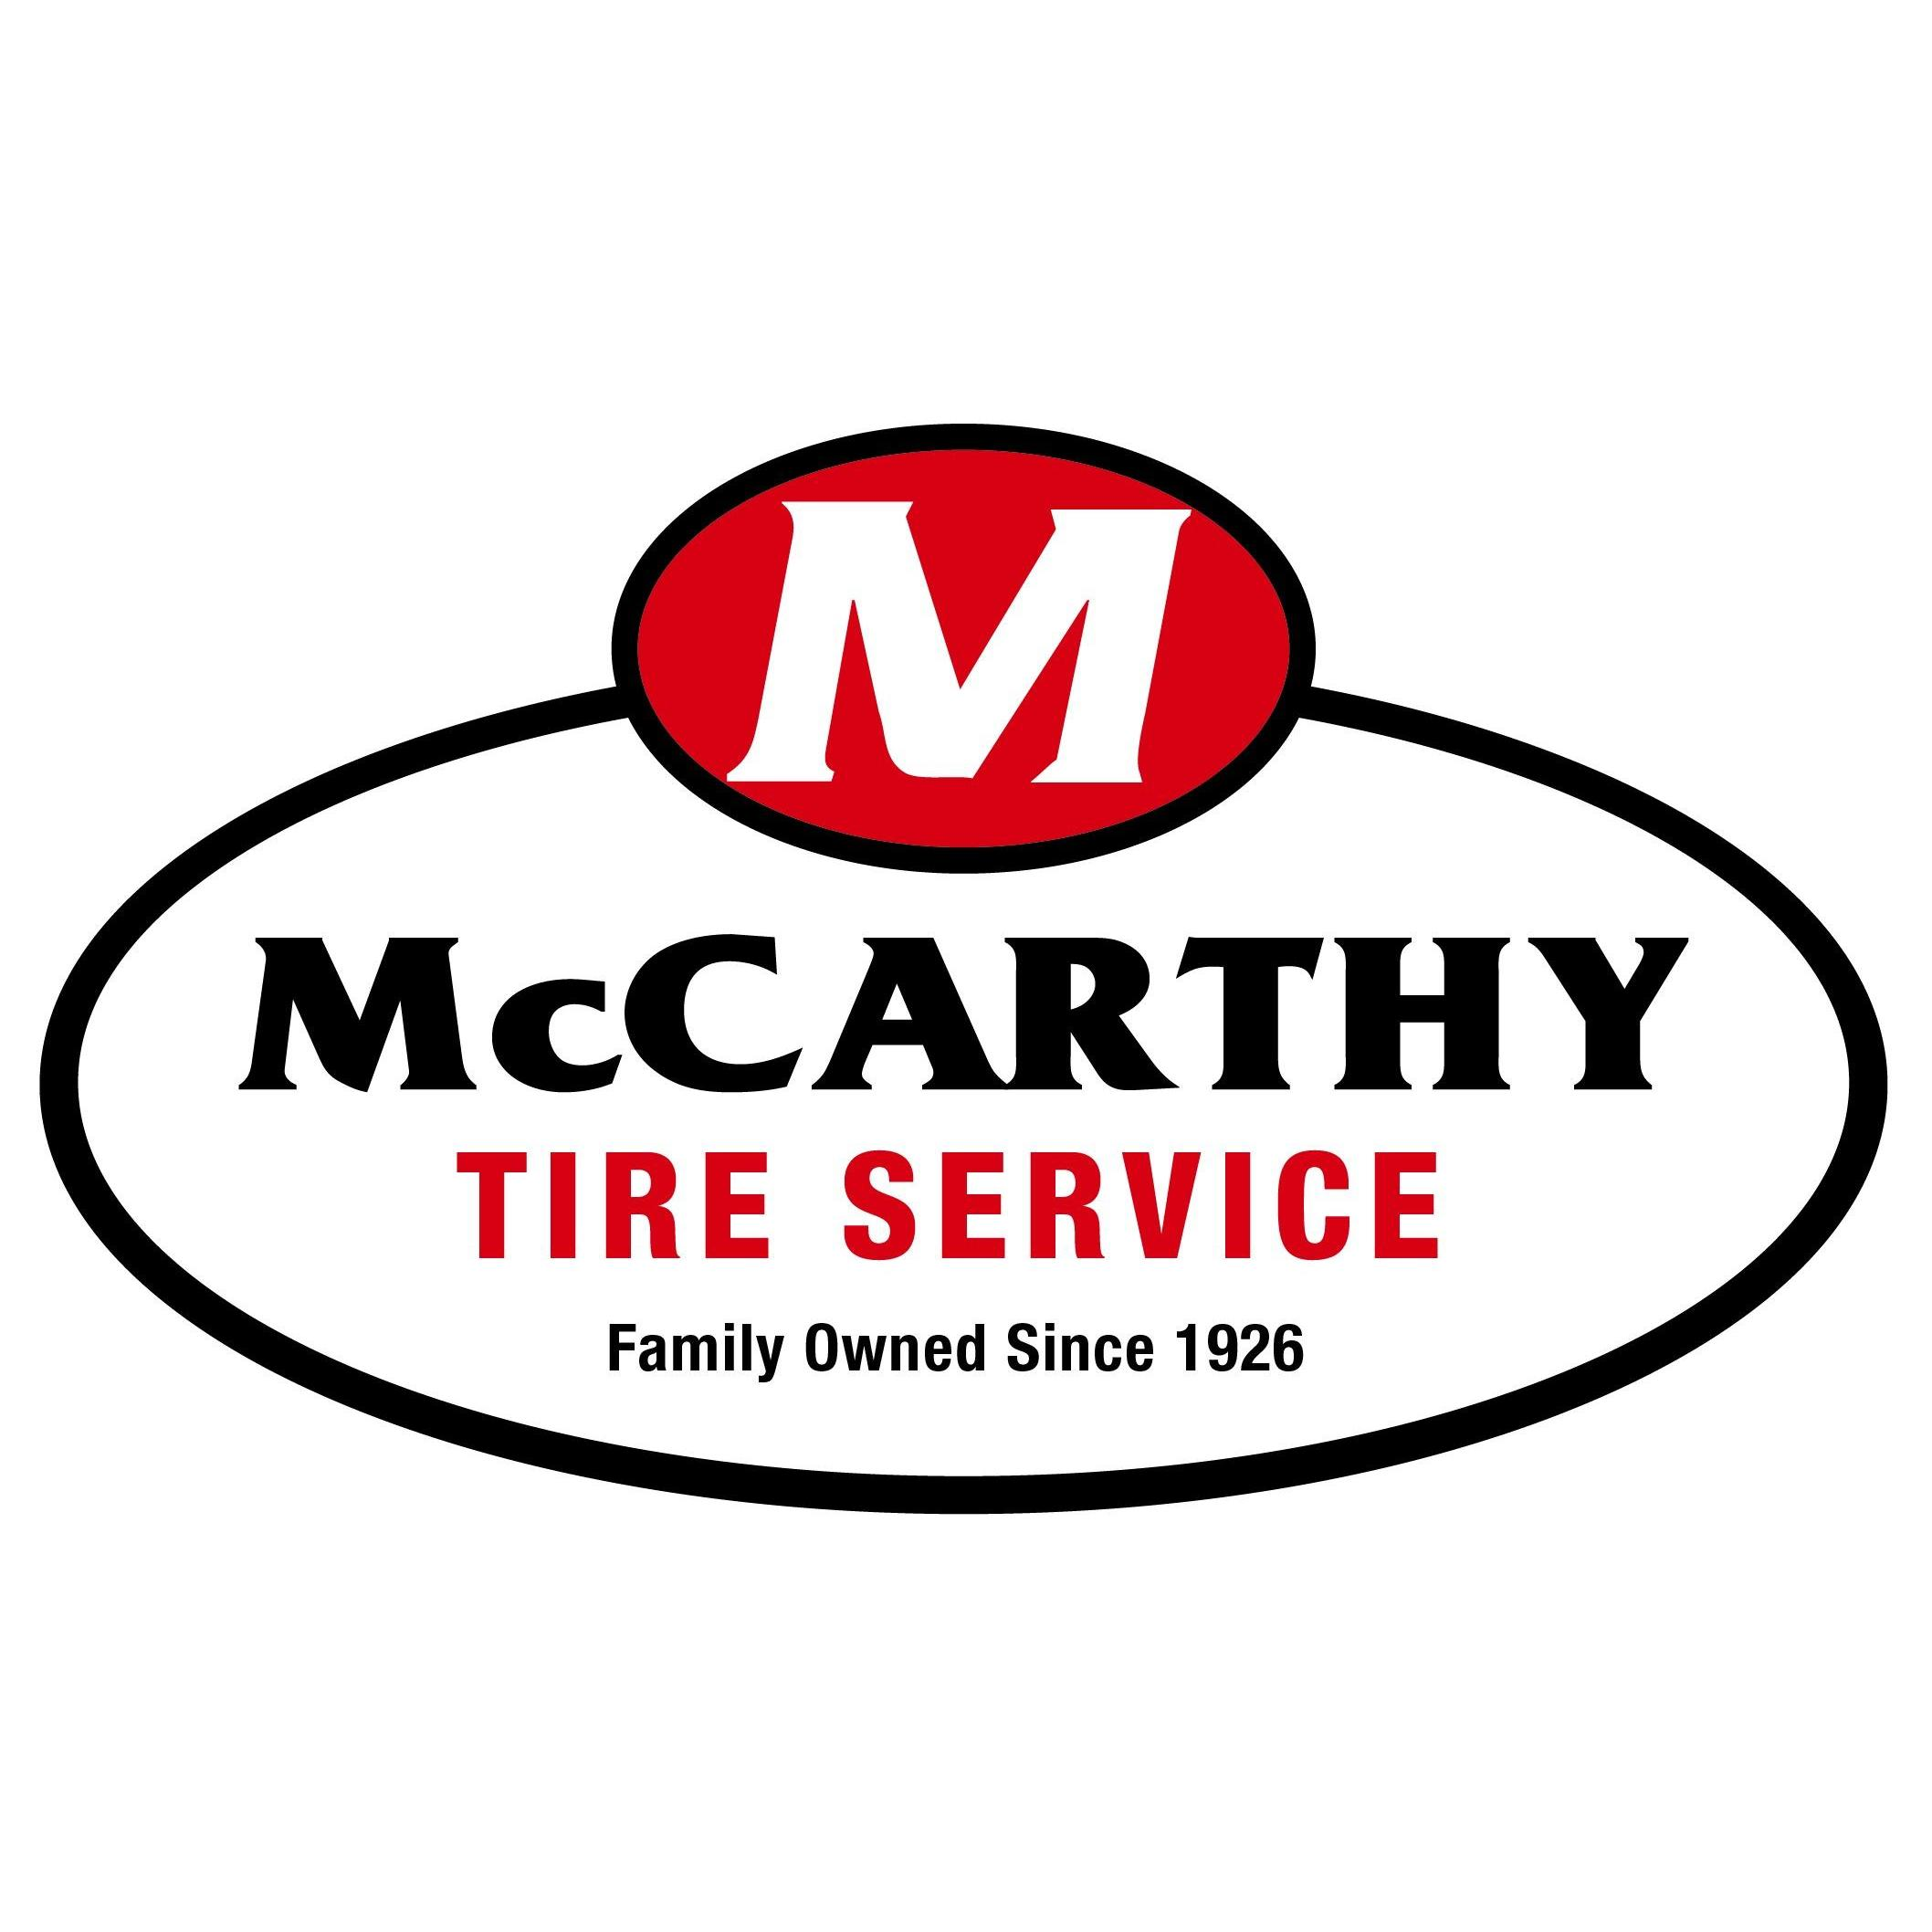 McCarthy Tire Service image 3